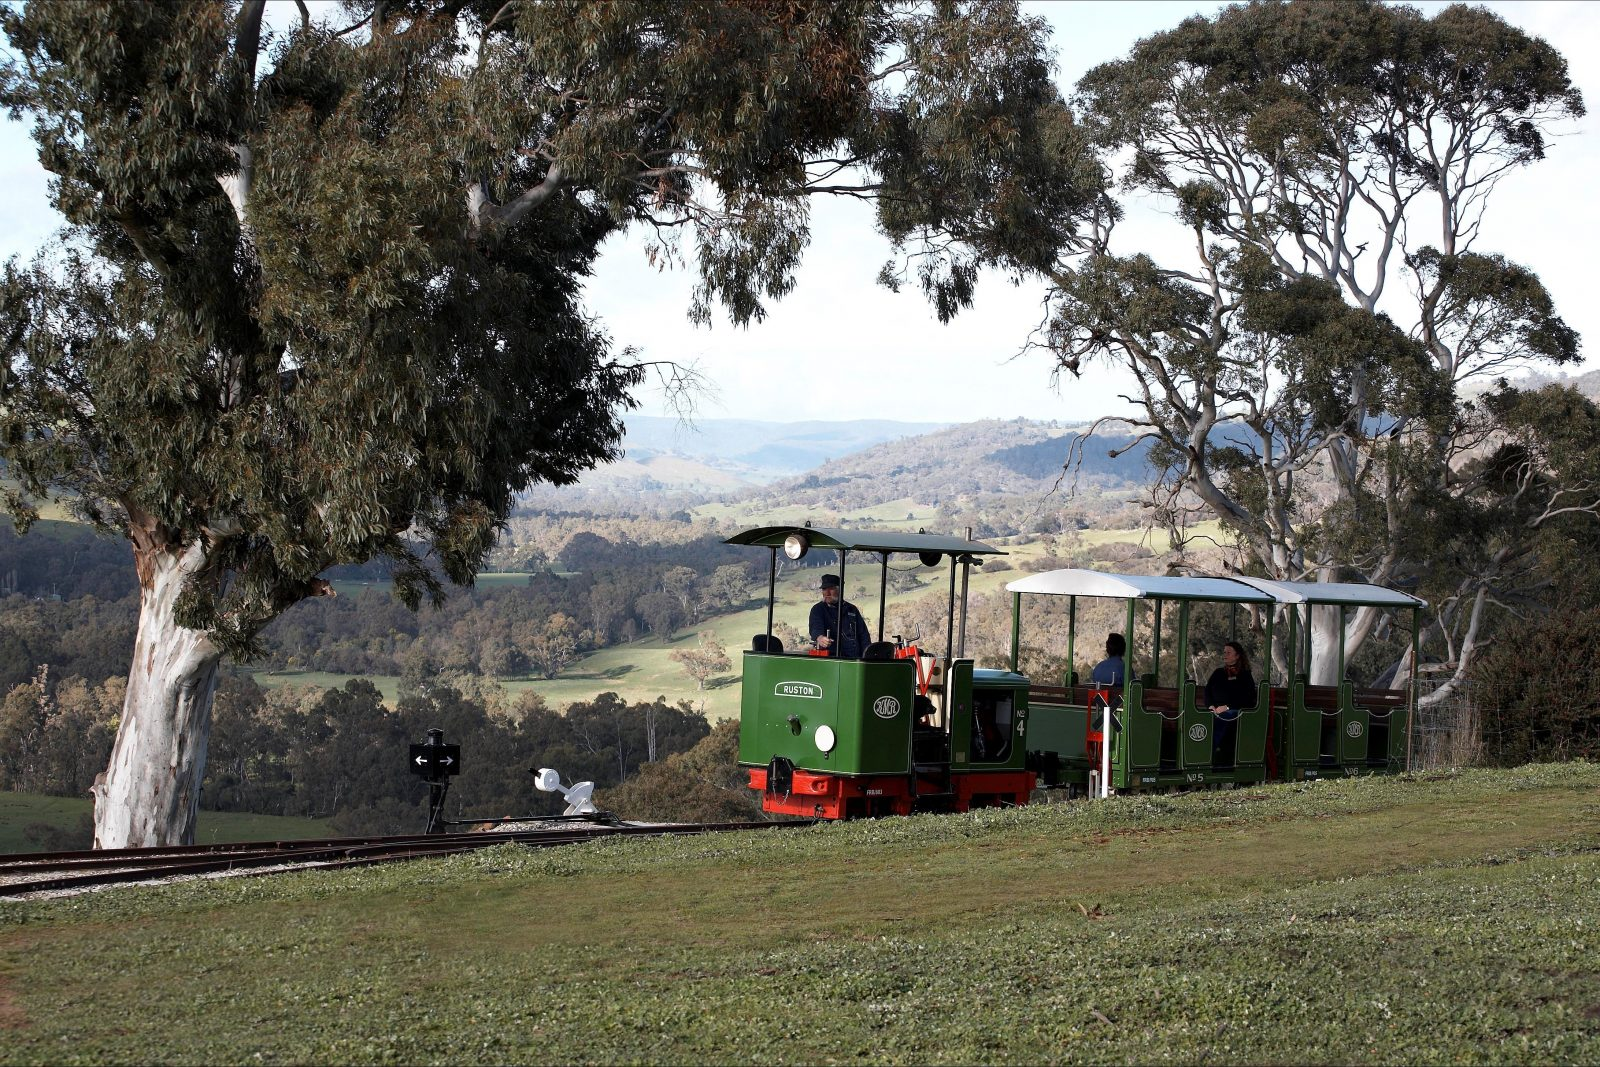 'Ruston' locomotive coming into 'Summit station' with a view South towards Strath Creek